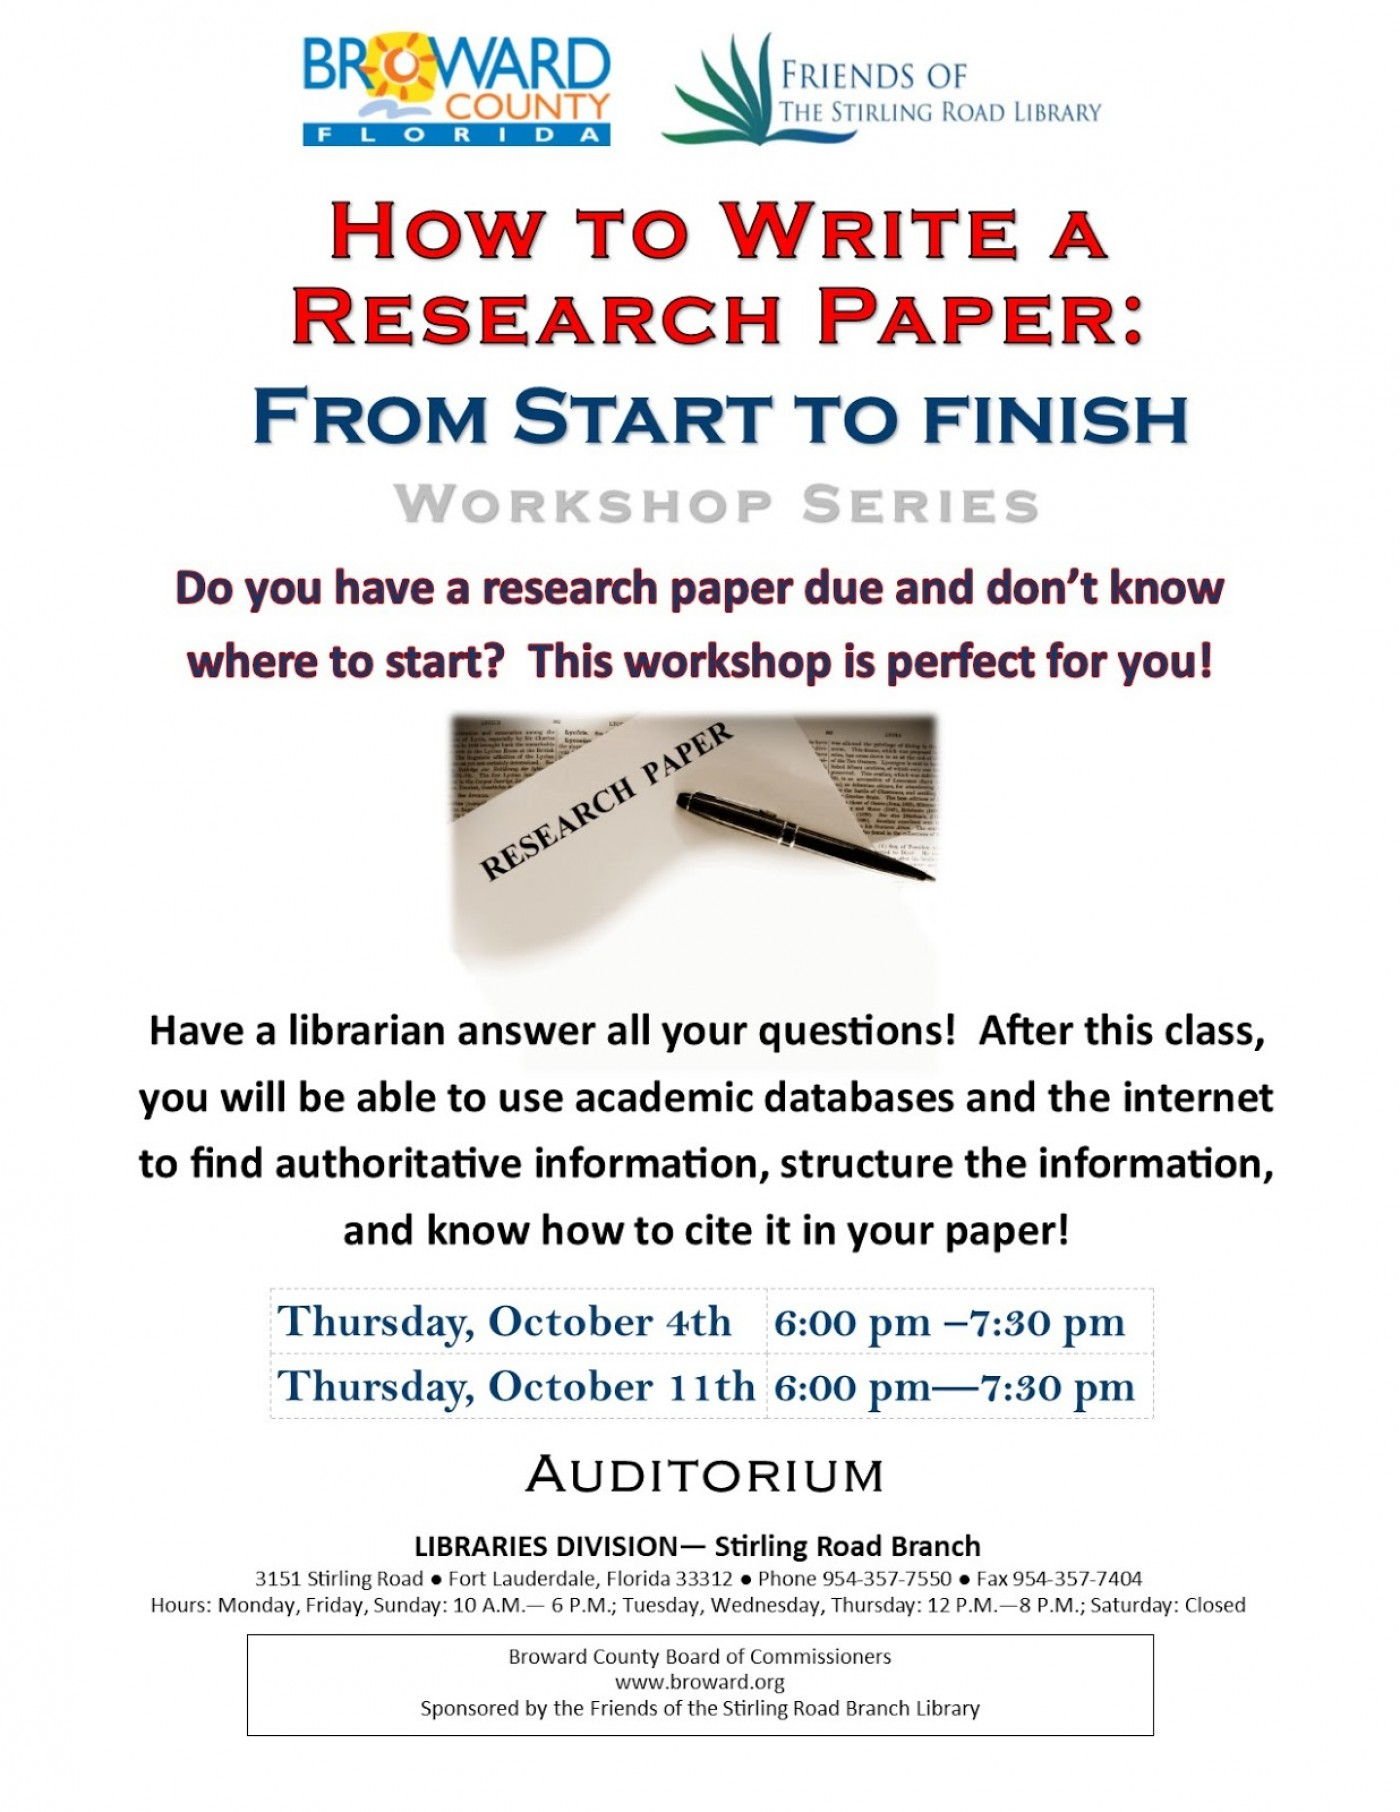 014 How To Write Research Paper Frightening Abstract For Sample Proposal A Summary Of Your 1400